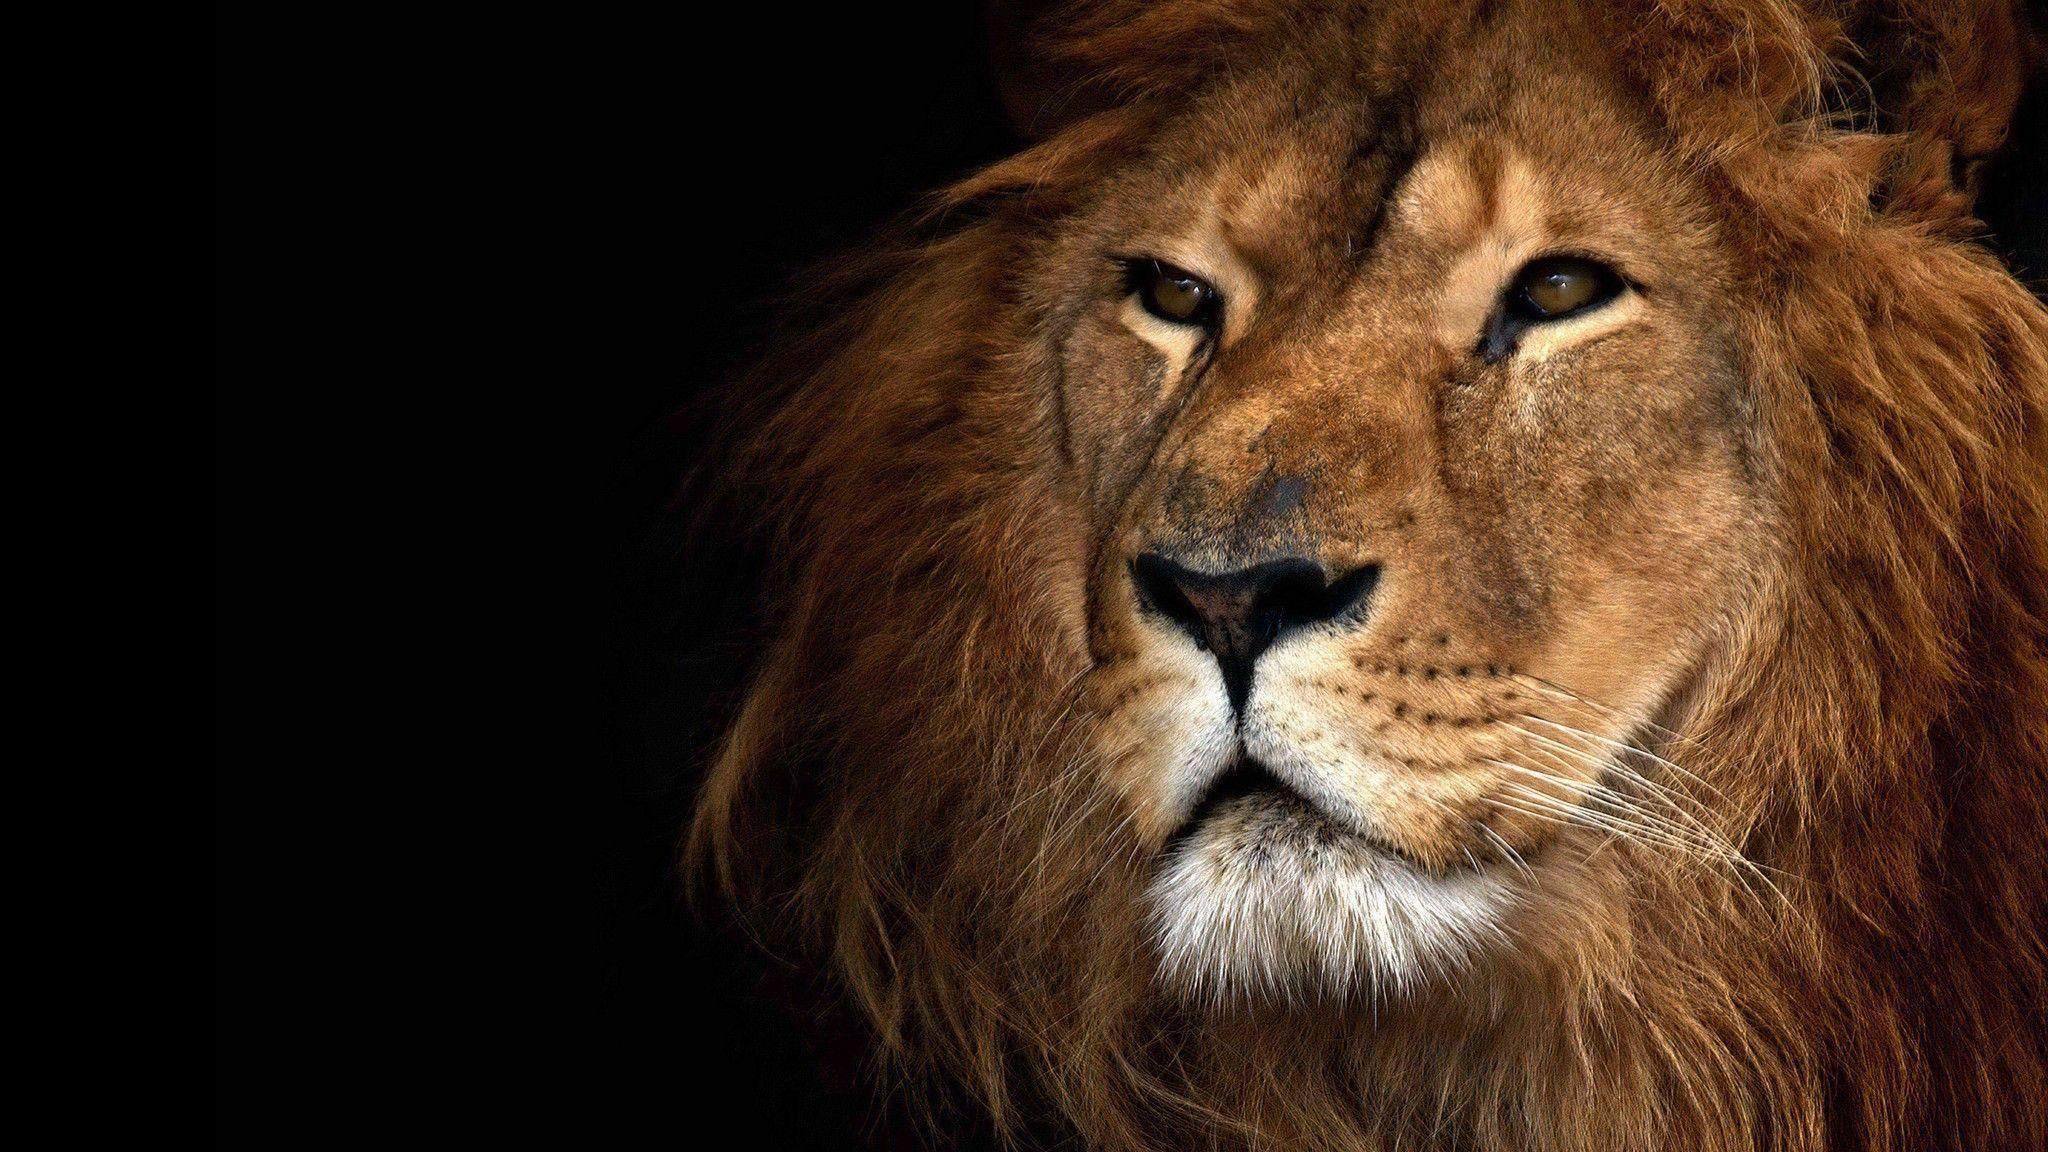 Lion Wallpapers And Backgrounds | HD Wallpapers